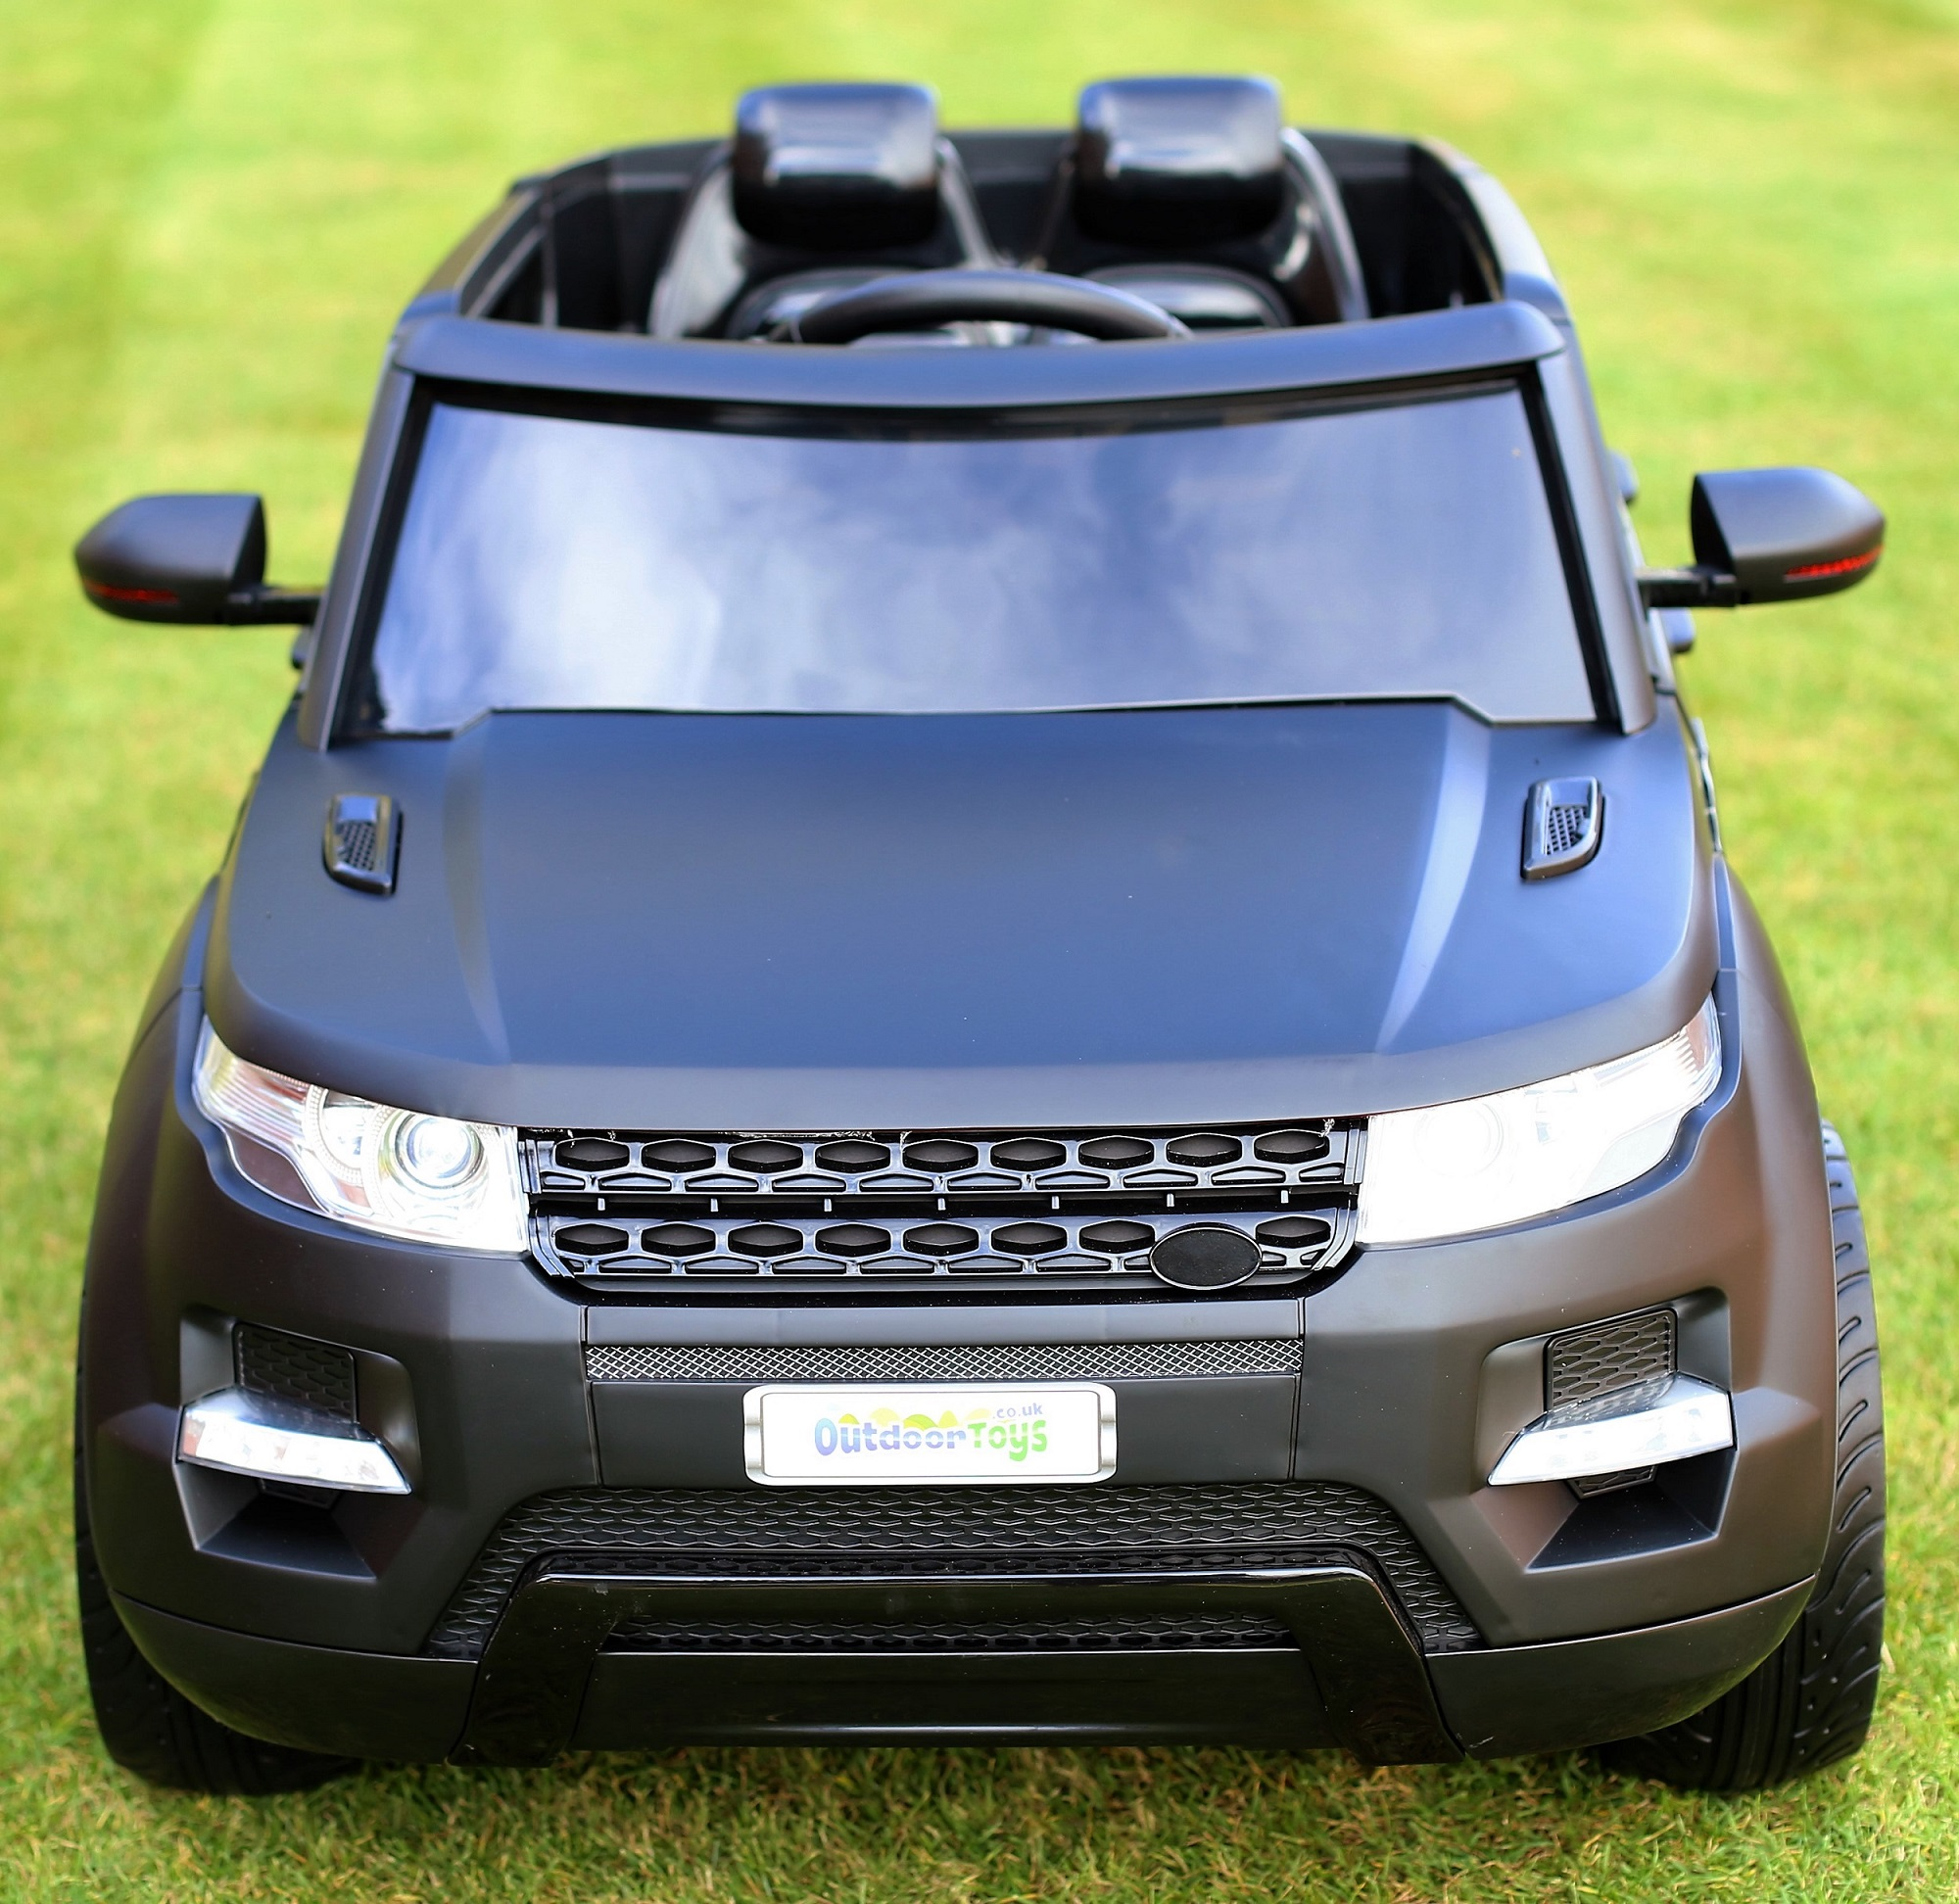 Maxi Range Rover HSE Sport Style 12v Electric Battery Ride on Jeep